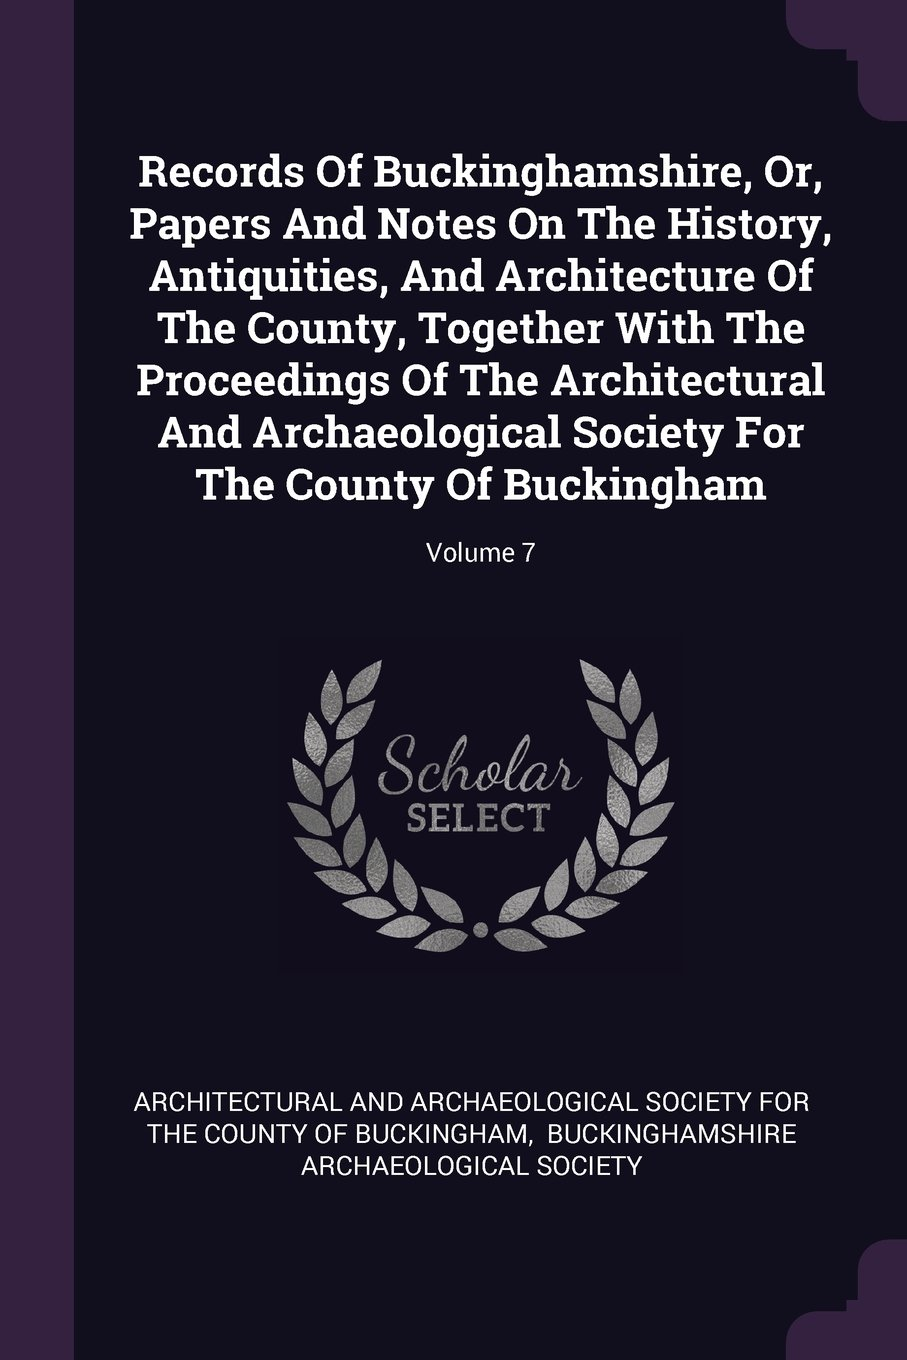 Download Records Of Buckinghamshire, Or, Papers And Notes On The History, Antiquities, And Architecture Of The County, Together With The Proceedings Of The ... For The County Of Buckingham; Volume 7 PDF